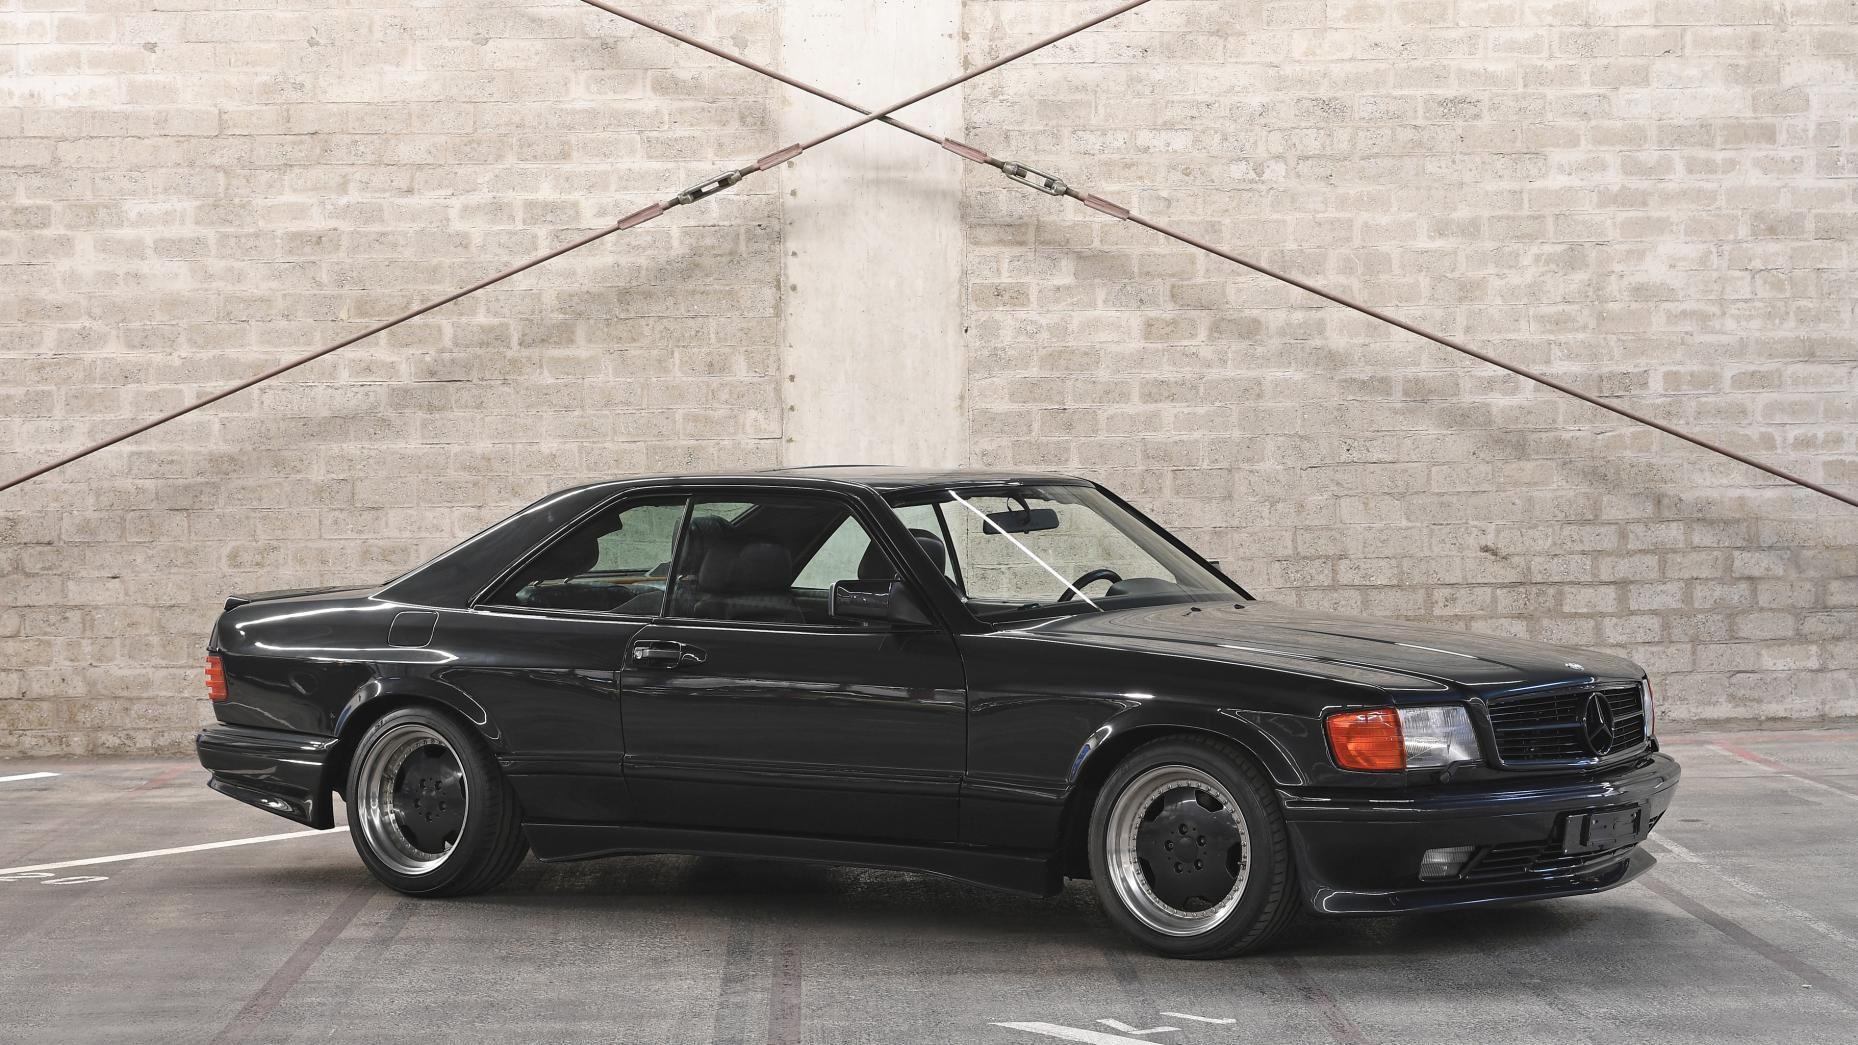 Mercedes-Benz 500 SEC AMG 6.0 widebody